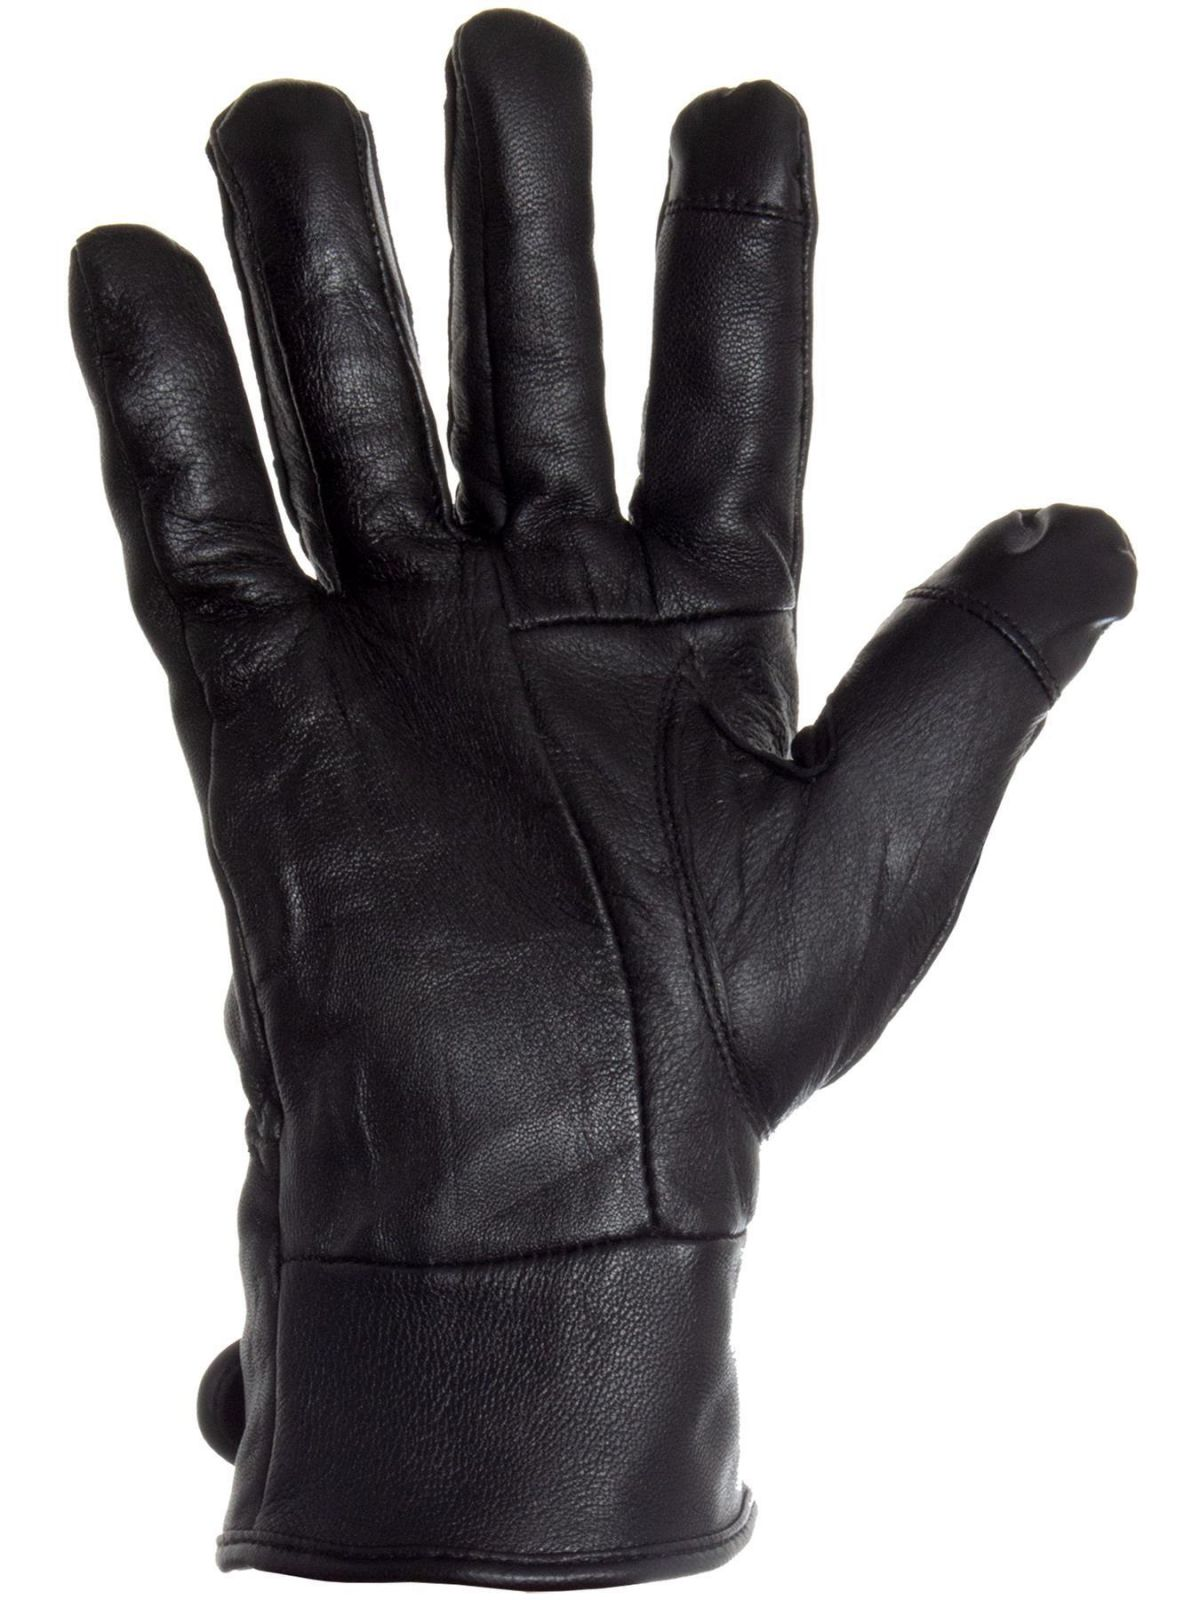 Accessories | Mens Touch Screen Gloves 100% Genuine Leather Thermal Lined Winter Driving Glove